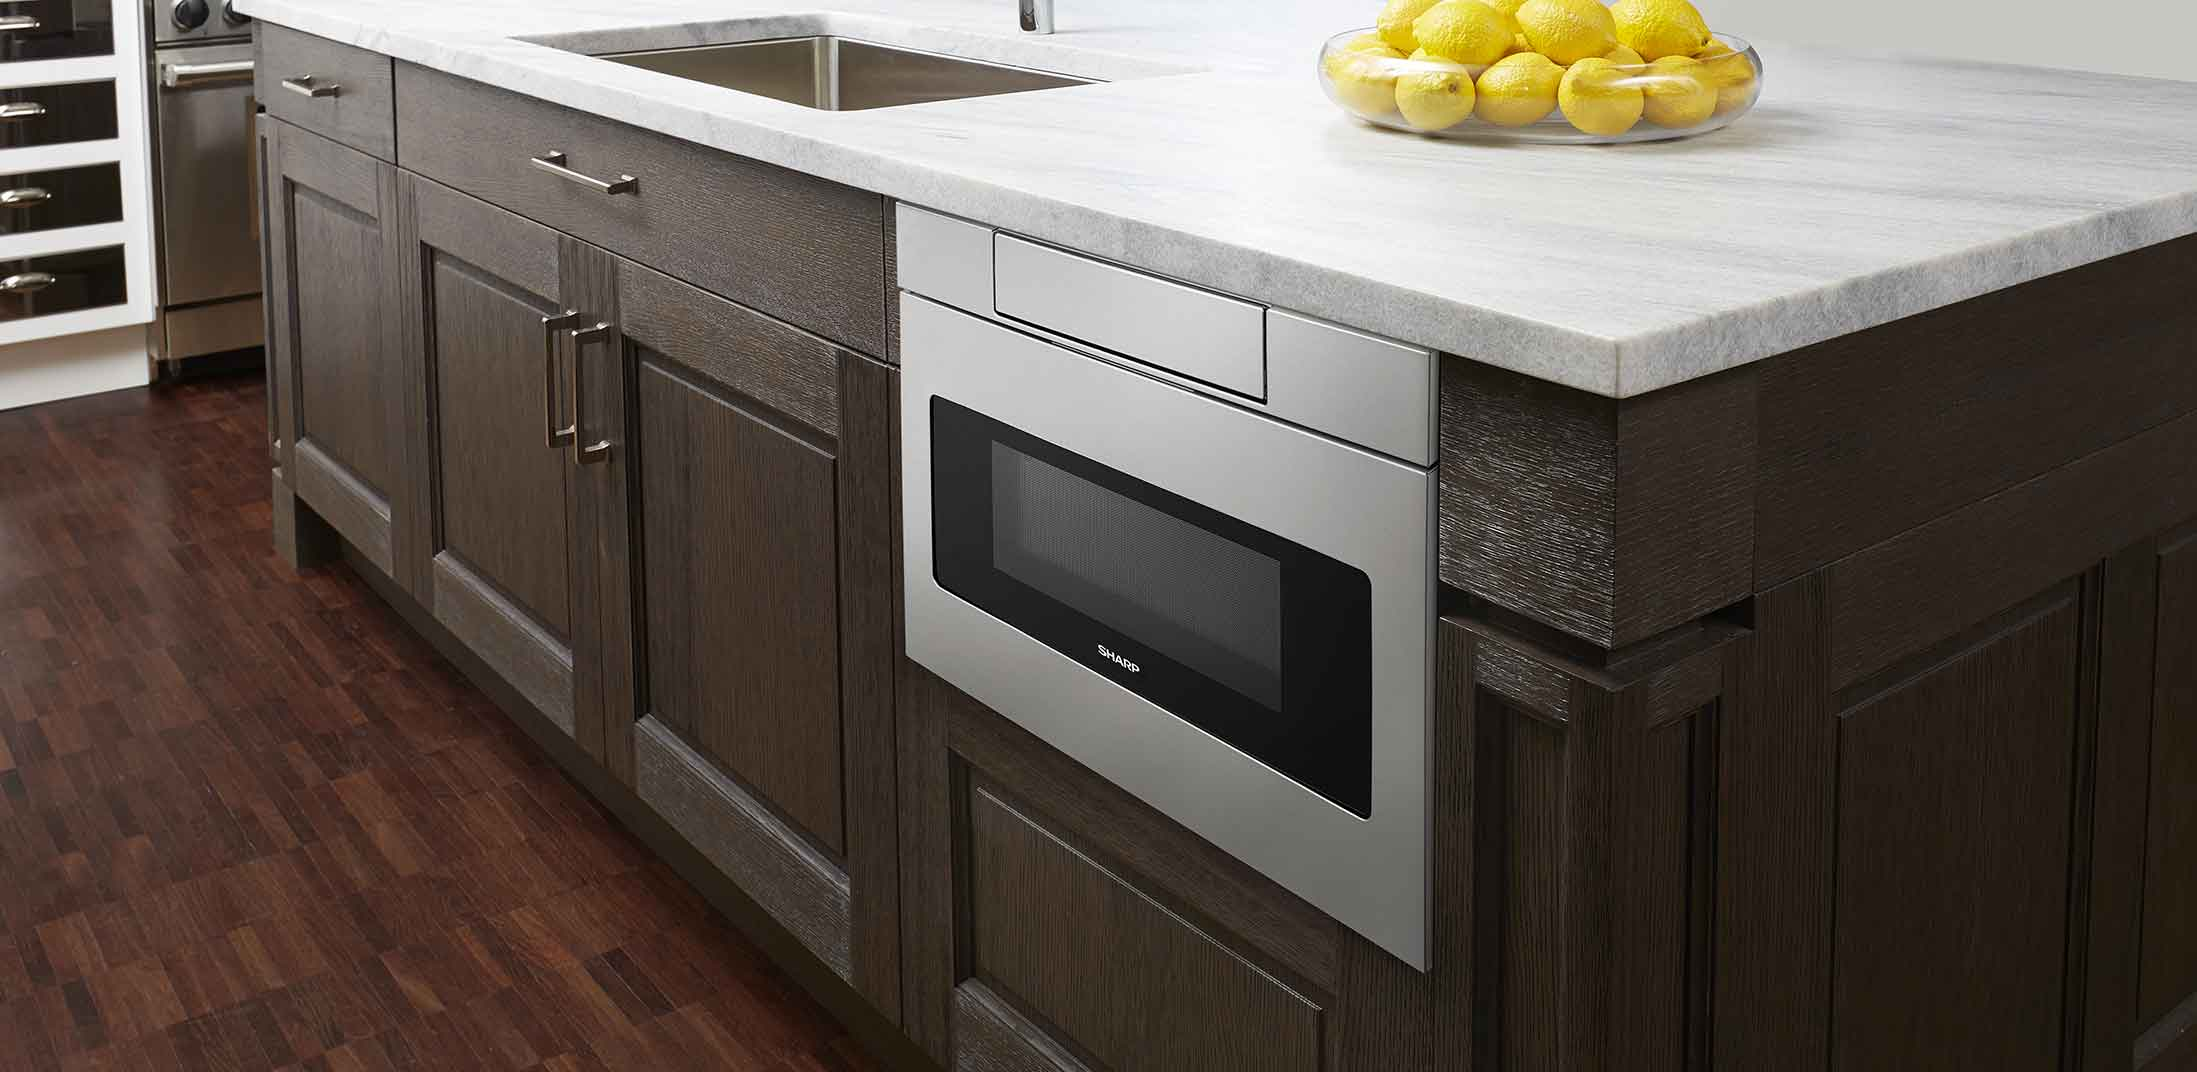 Convenient Placement Options The Microwave Drawer  Microwave Drawer In Island A93